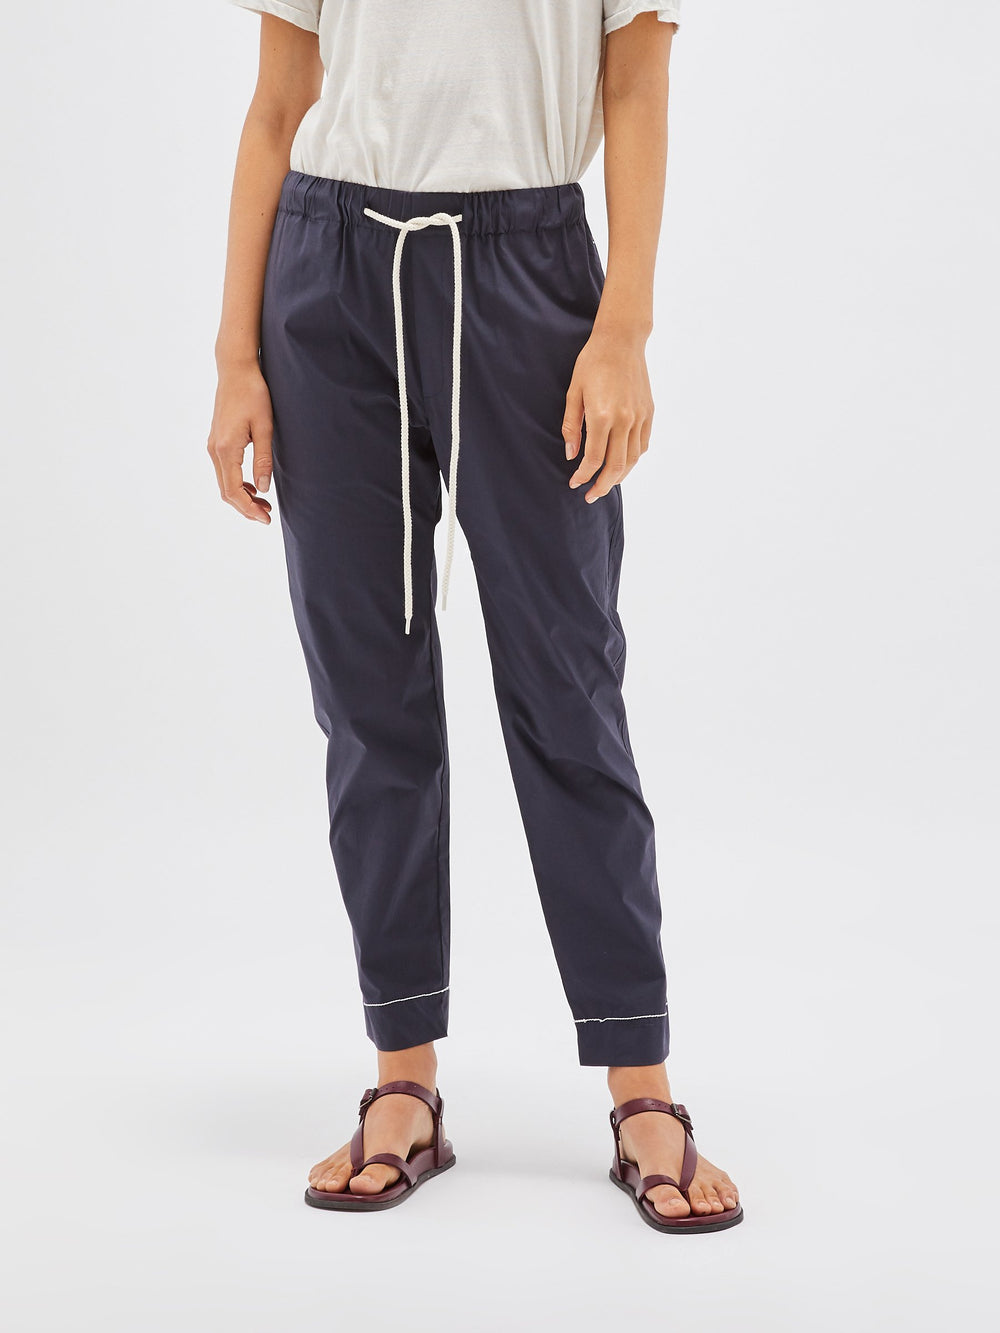 stretch cotton pull on pant